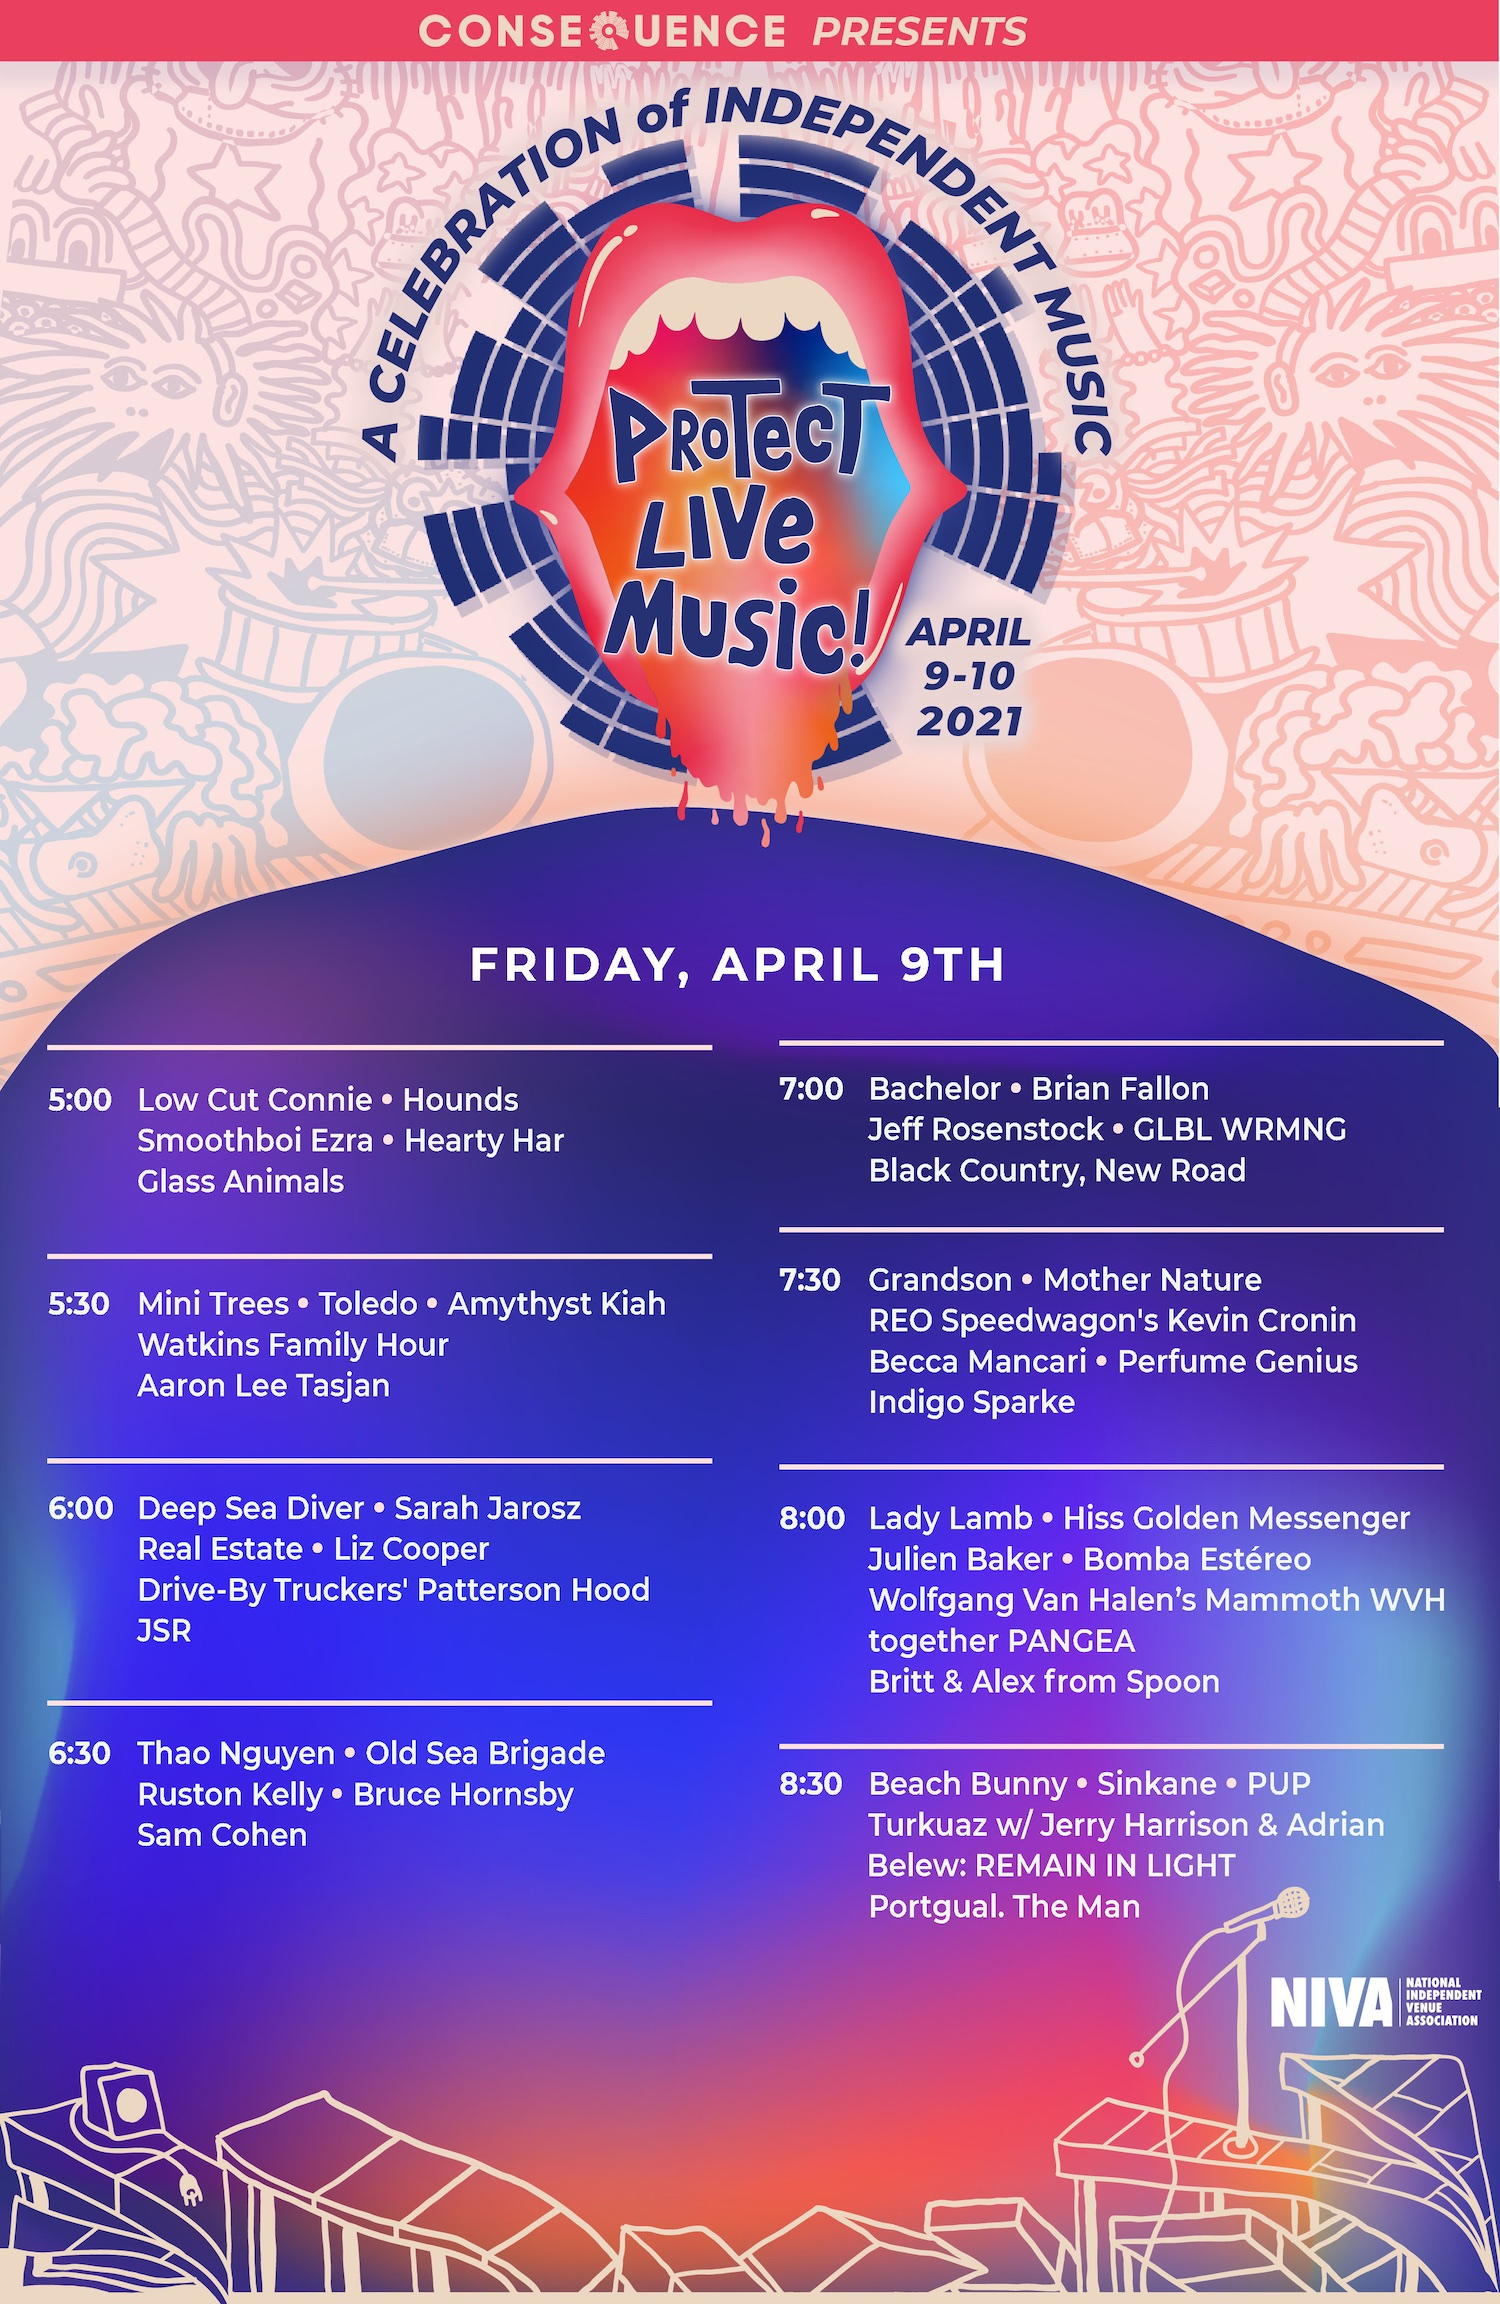 Friday Consequence of Sound Protect Live Music Daily Schedule Poster FINAL